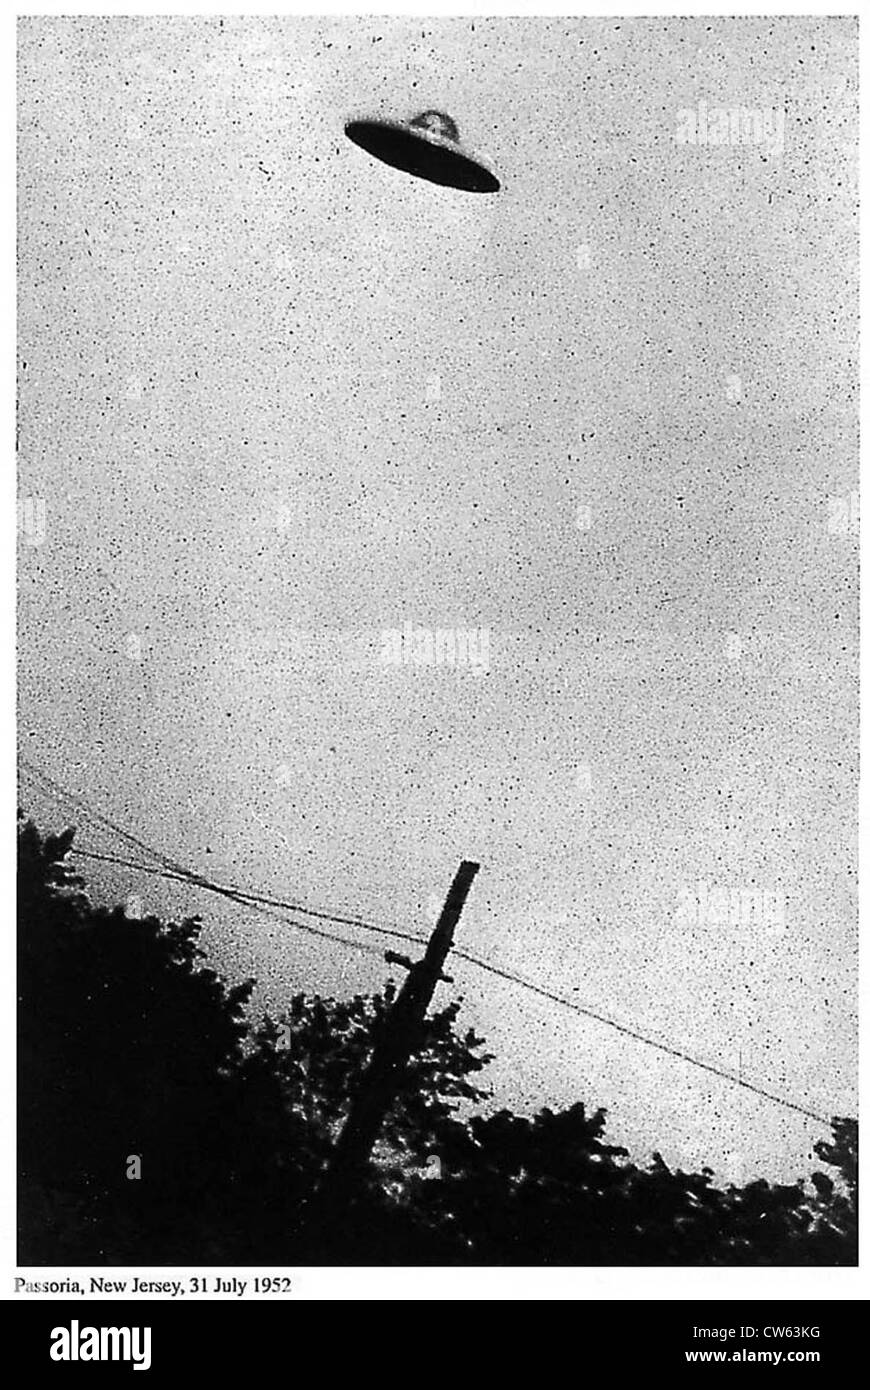 Image of purported UFO, Passoria, New Jersey, USA, 31st July 1952 - Stock Image